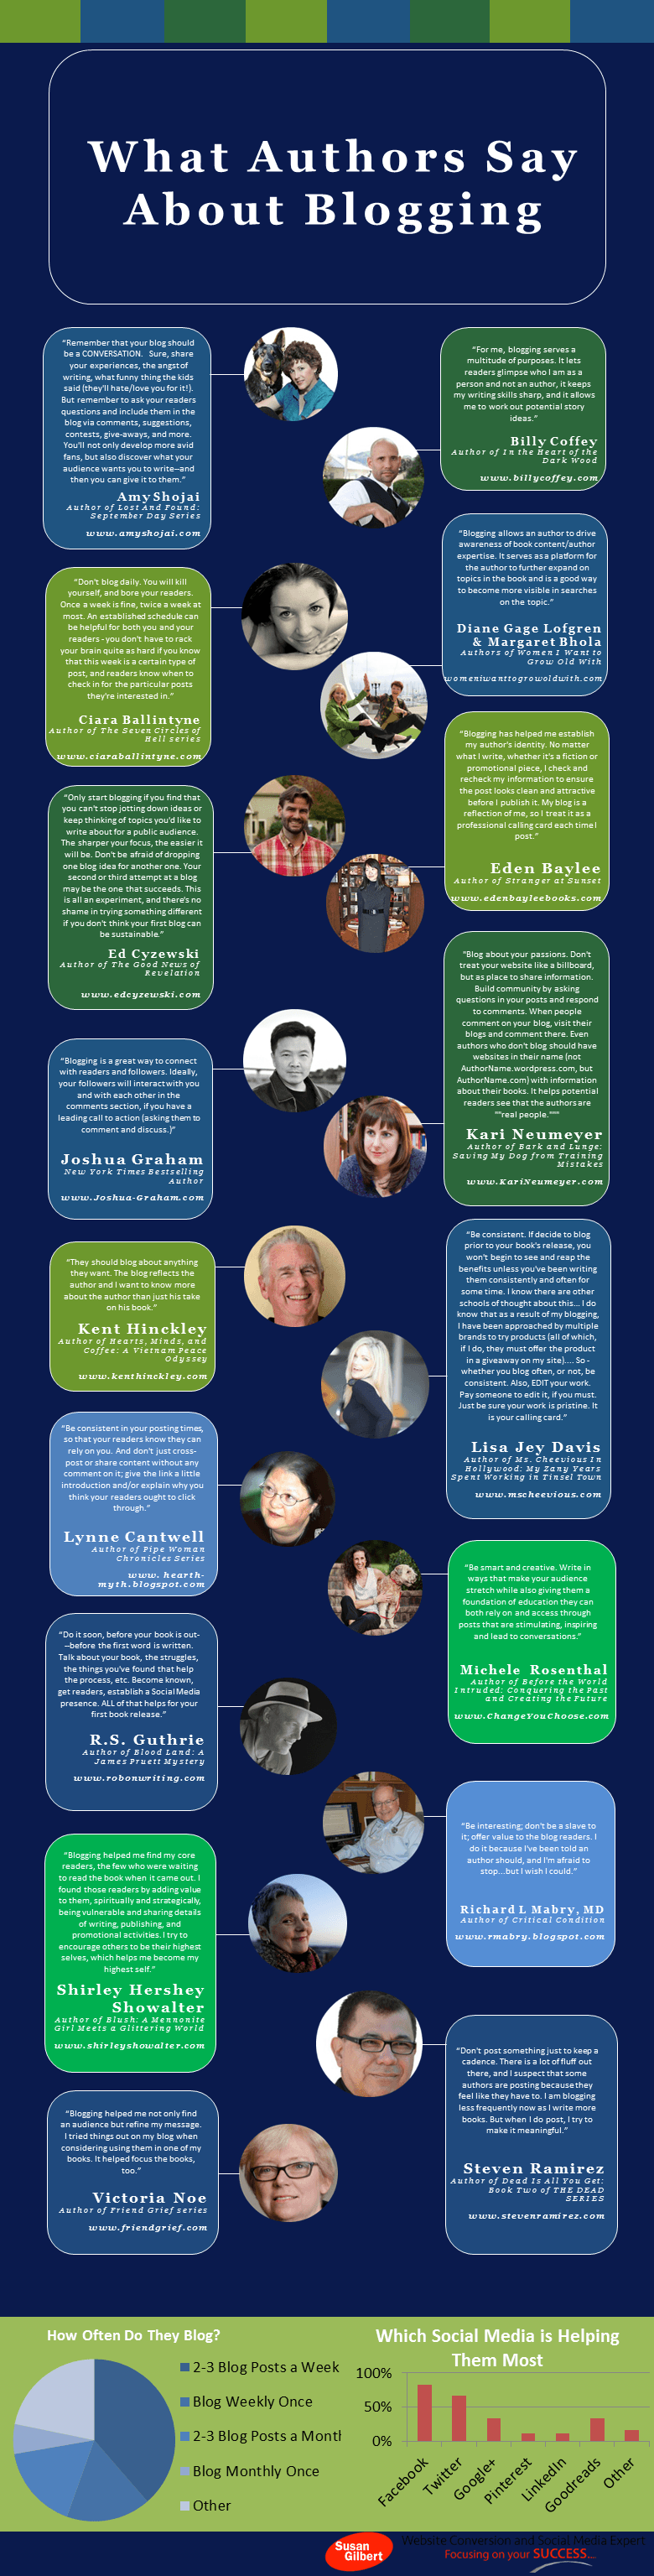 What Authors Say about Blogging [Infographic]